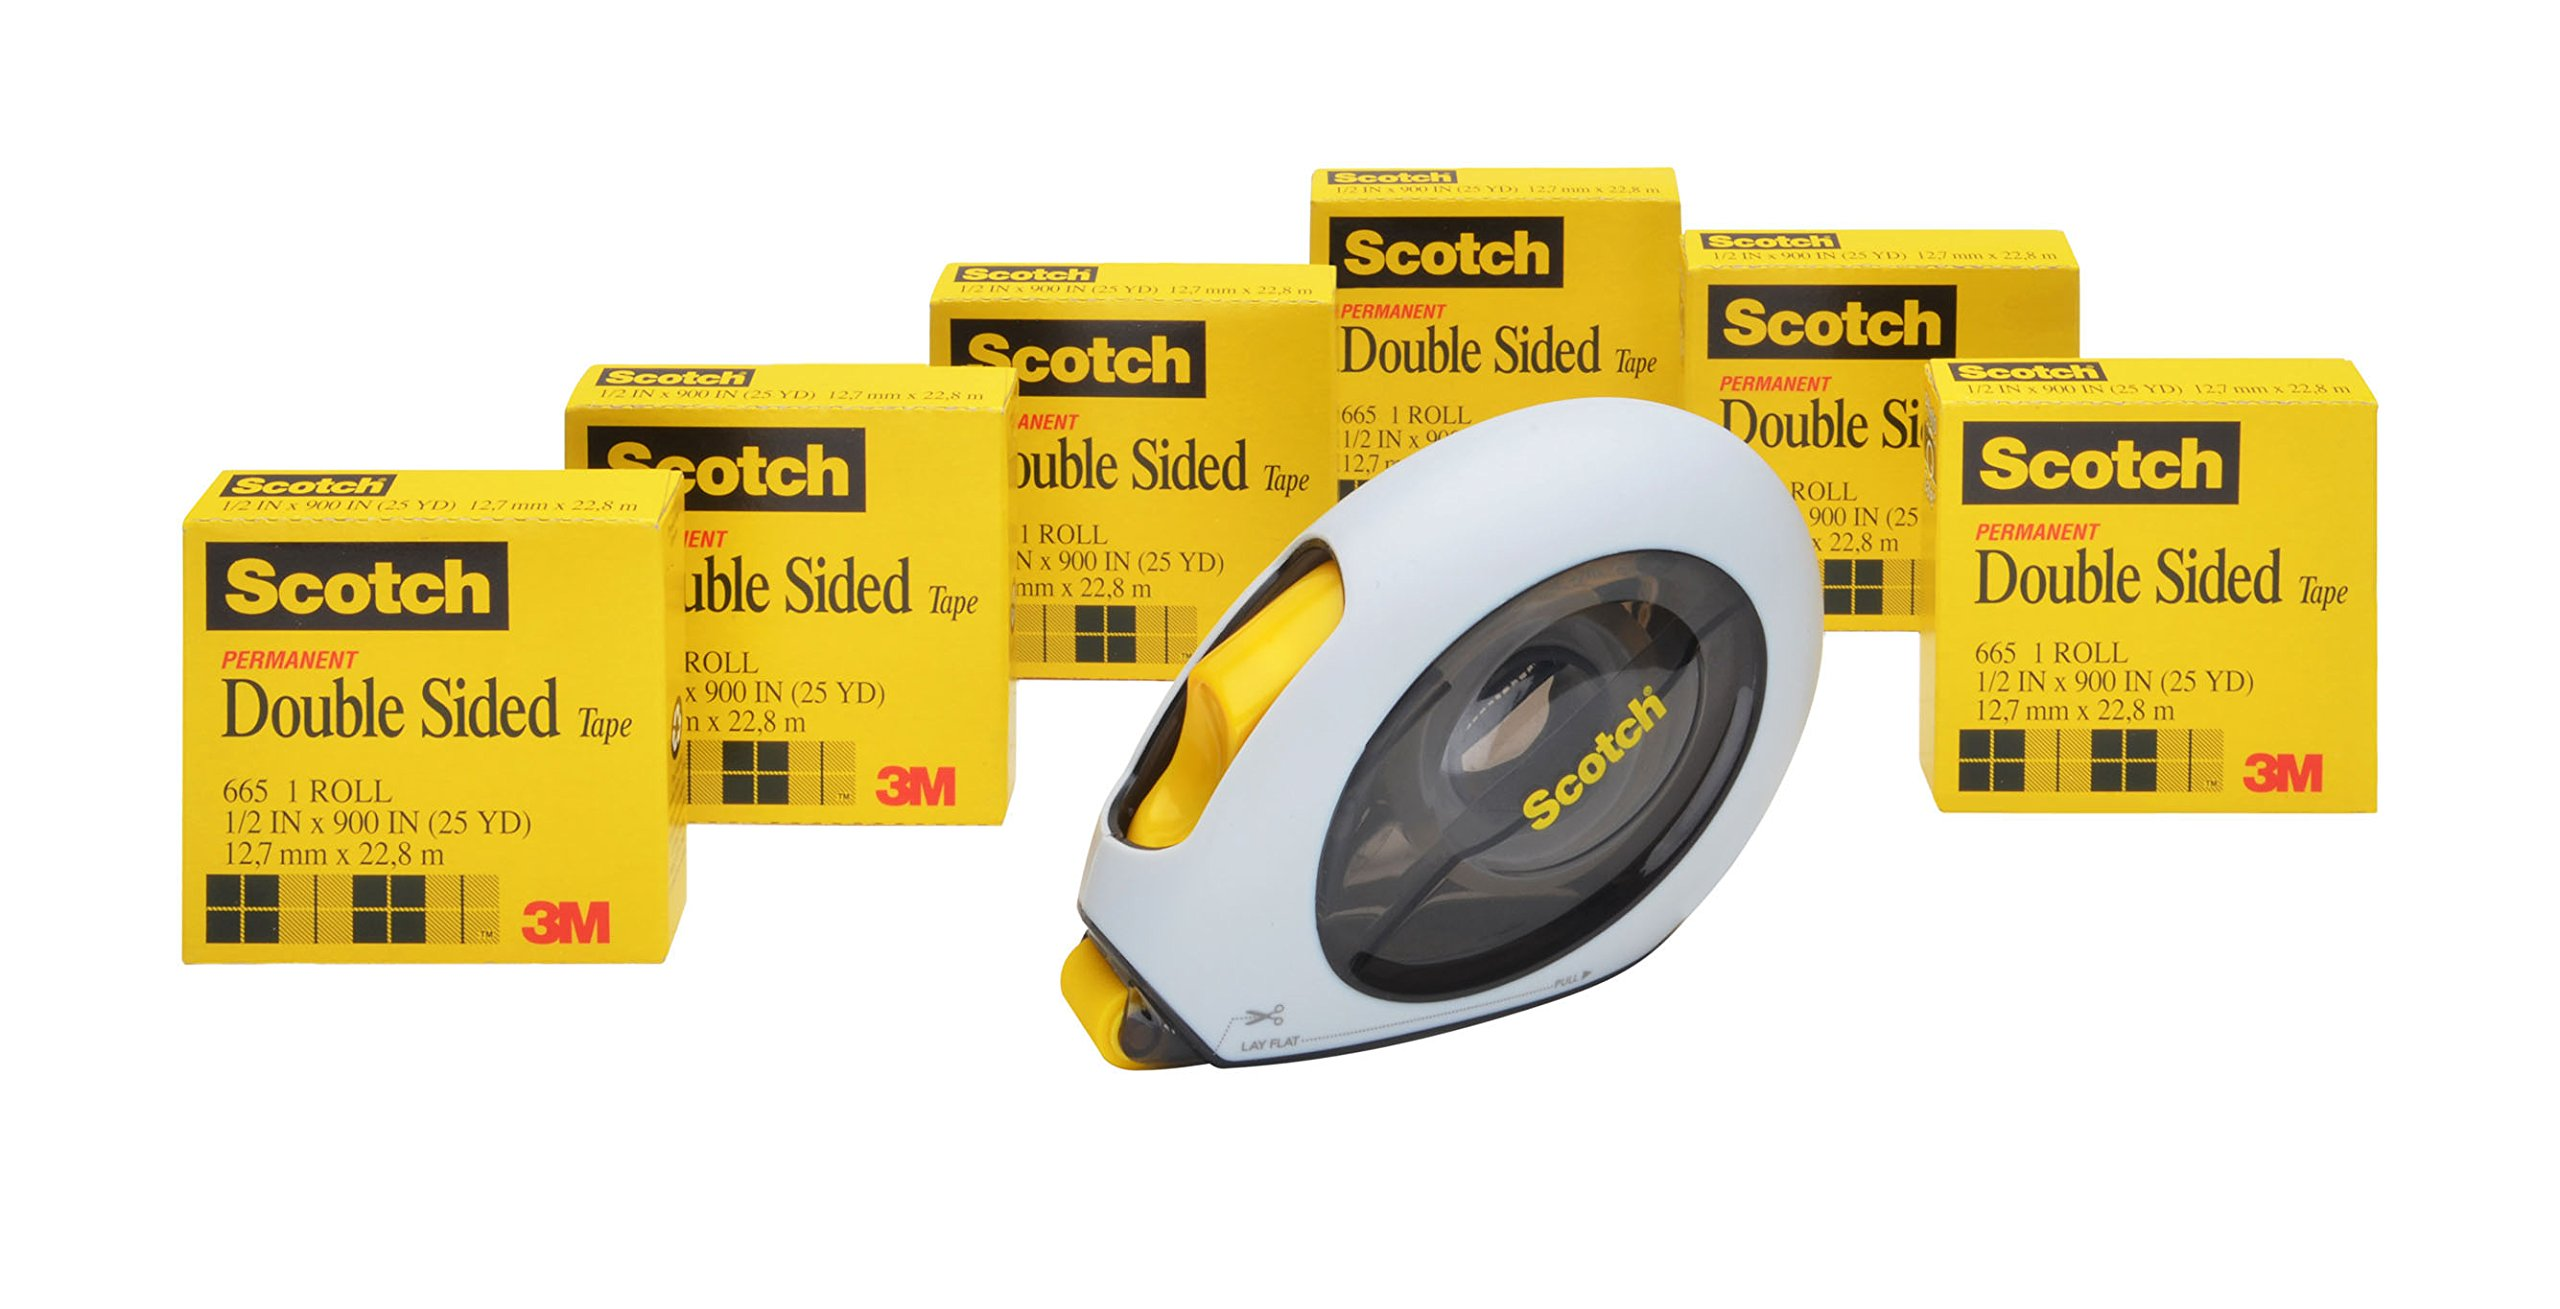 Scotch Double Sided Tape Applicator, 1/2 x 900 Inches, 6 Rolls (665-6-160)